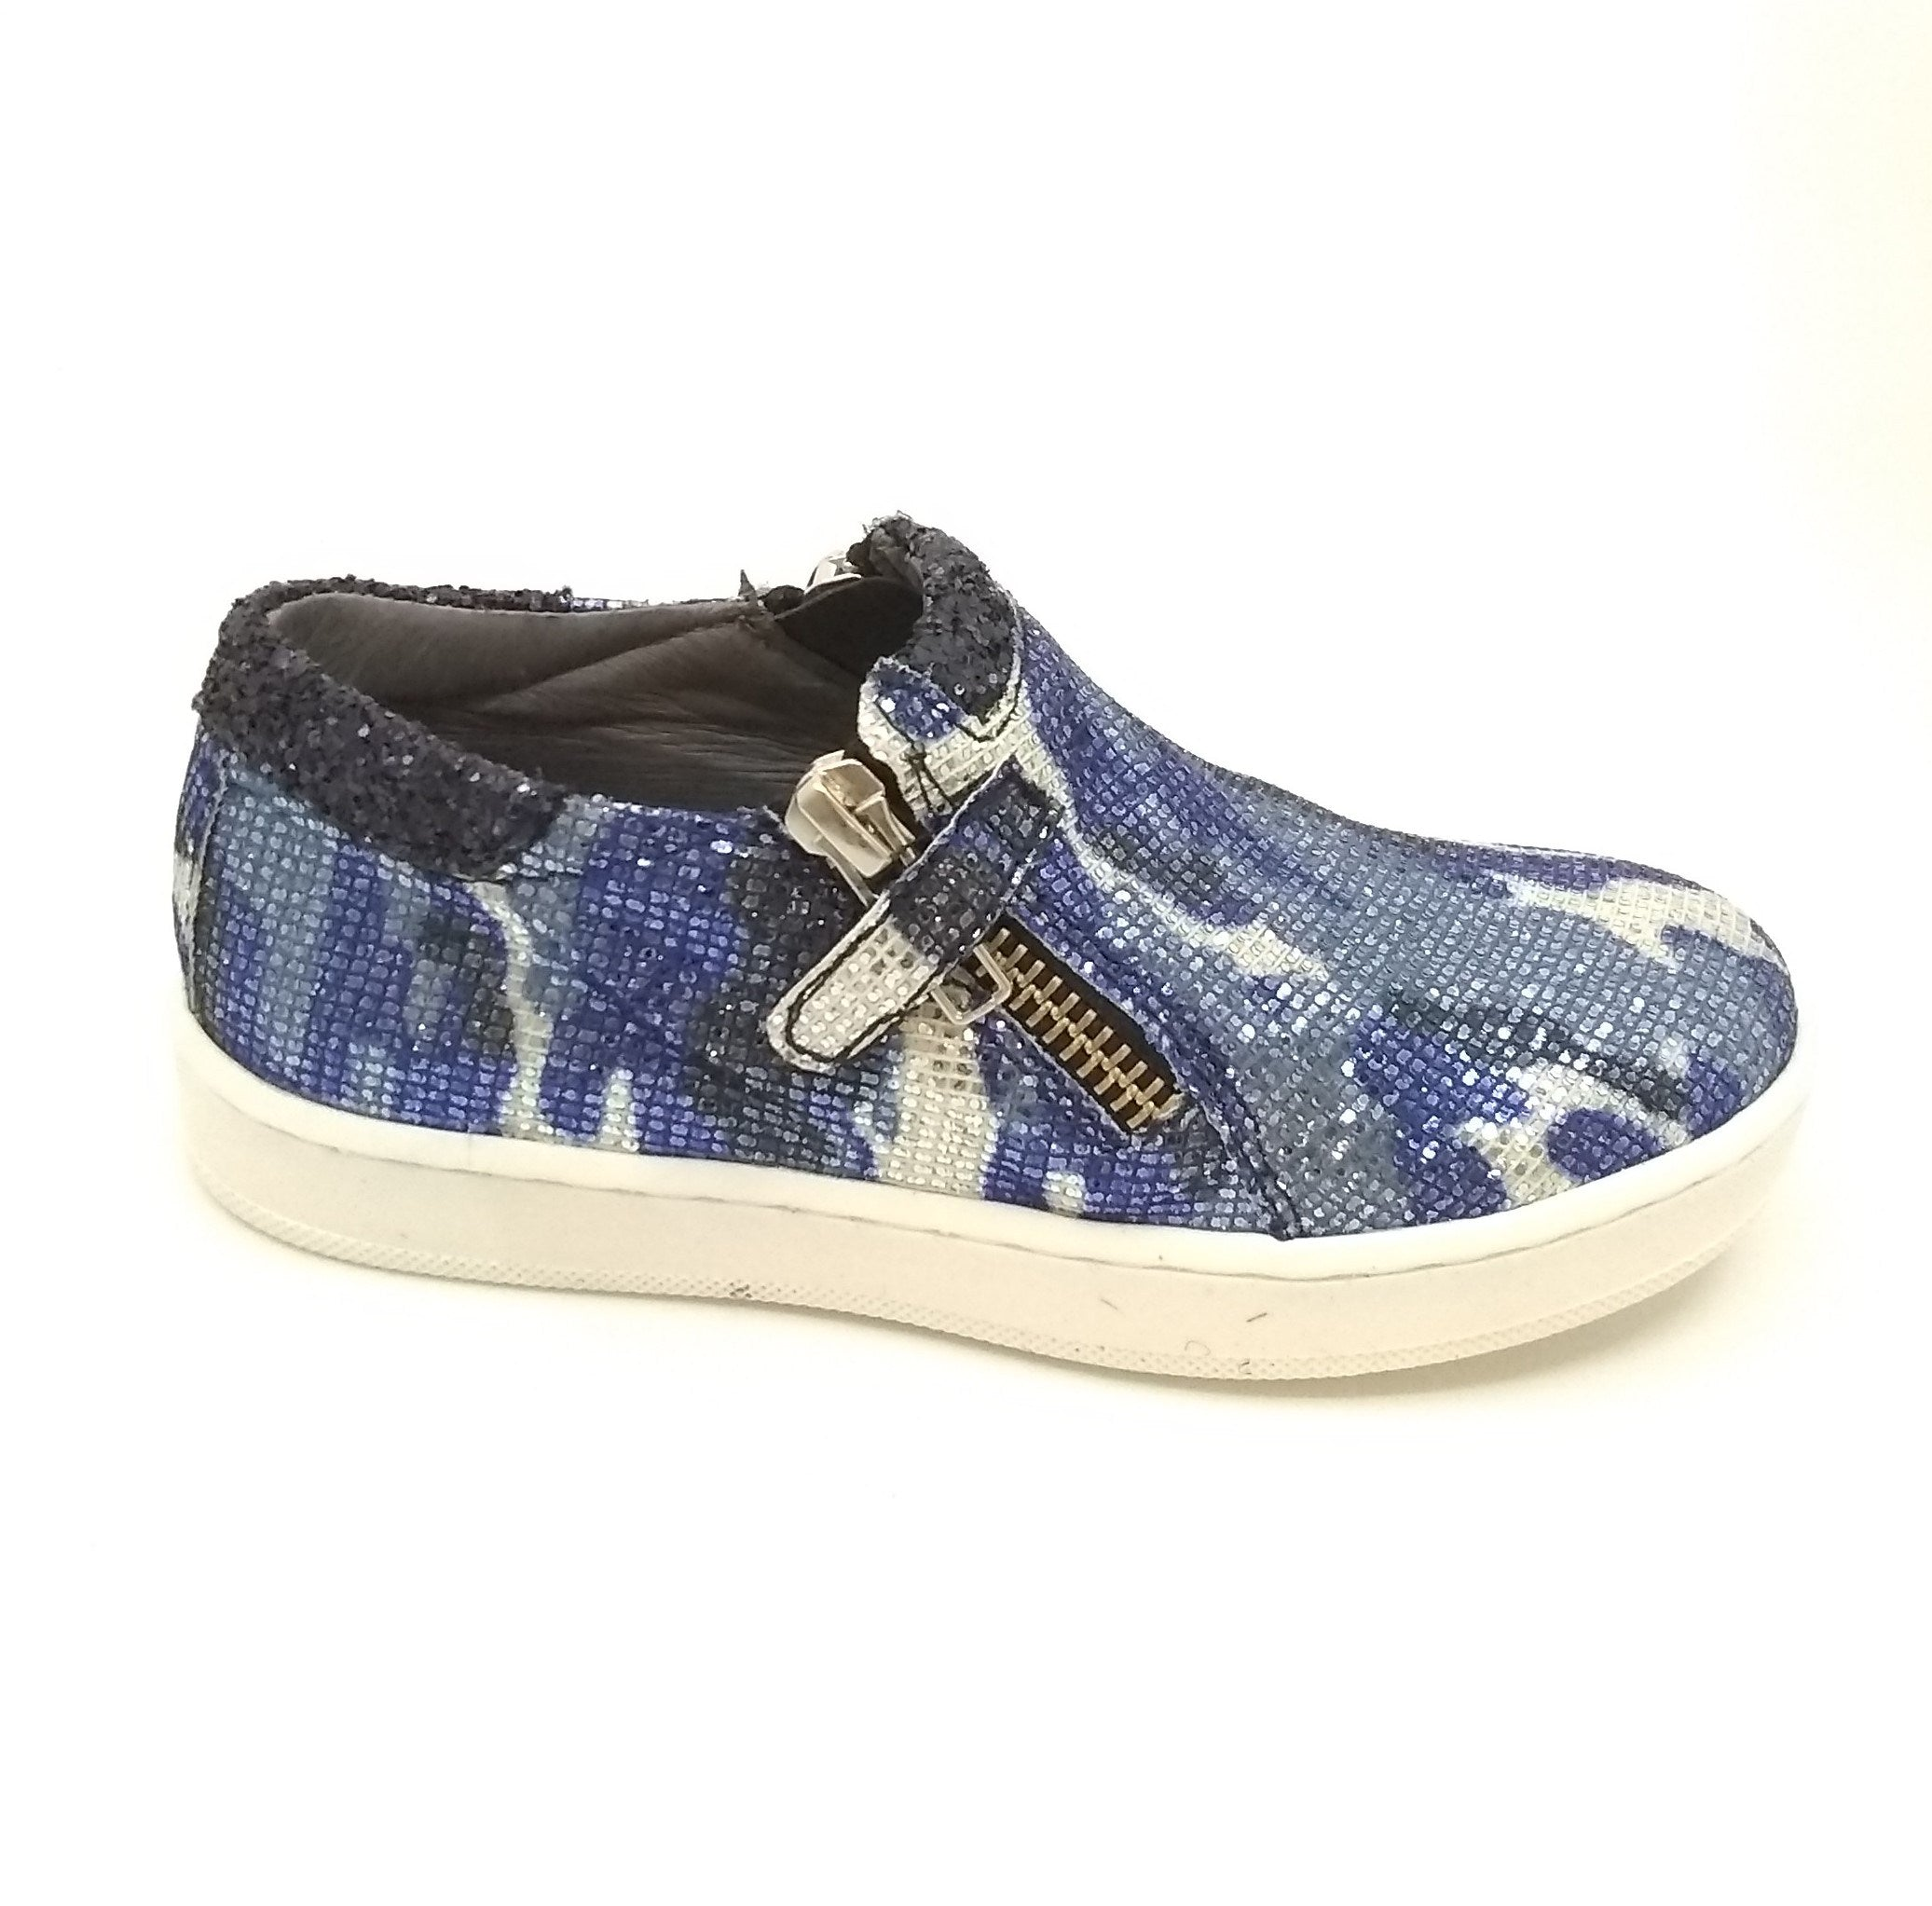 Blublonc Blue Double Zipper Sparkly Sneaker